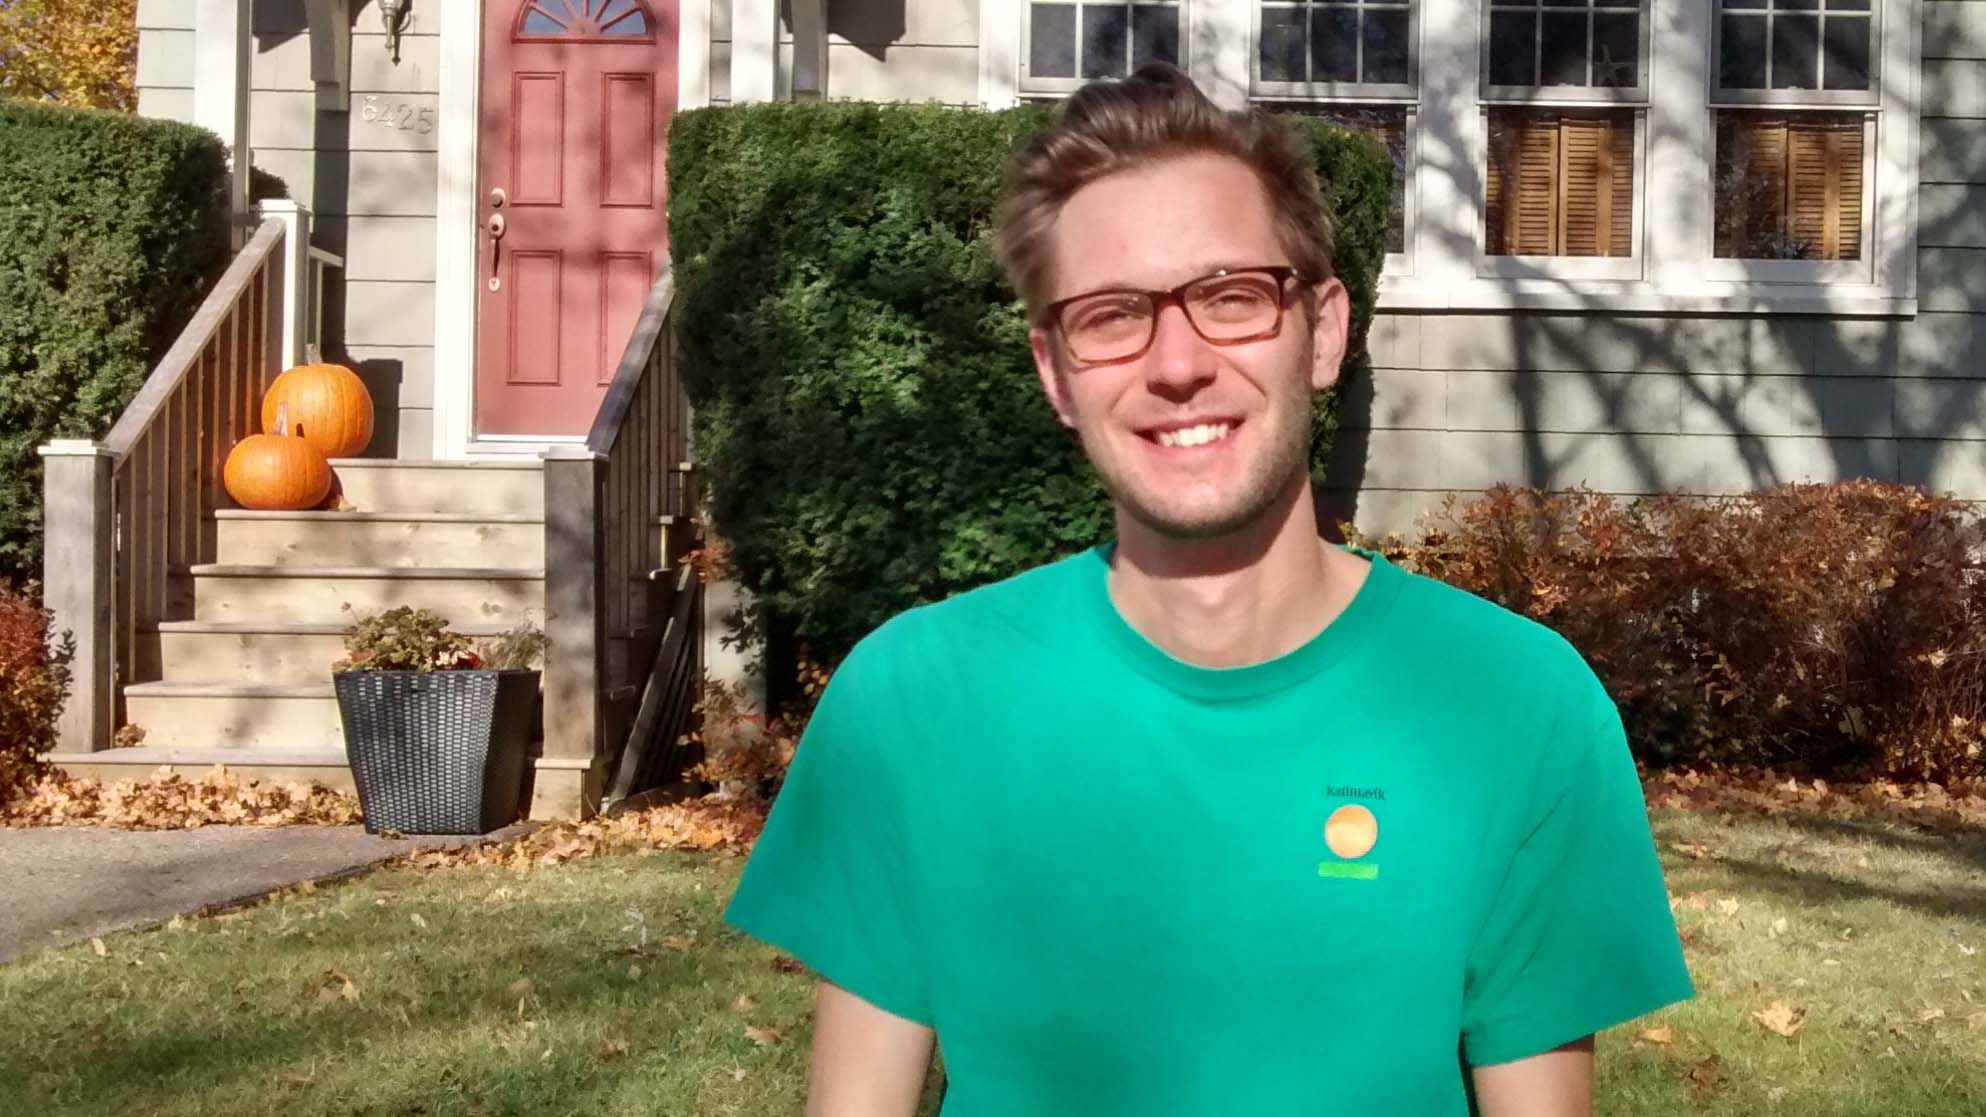 Mat Barkley participated in Katimavik in 2010. He's feeling optimistic about the potential for increased federal funding.